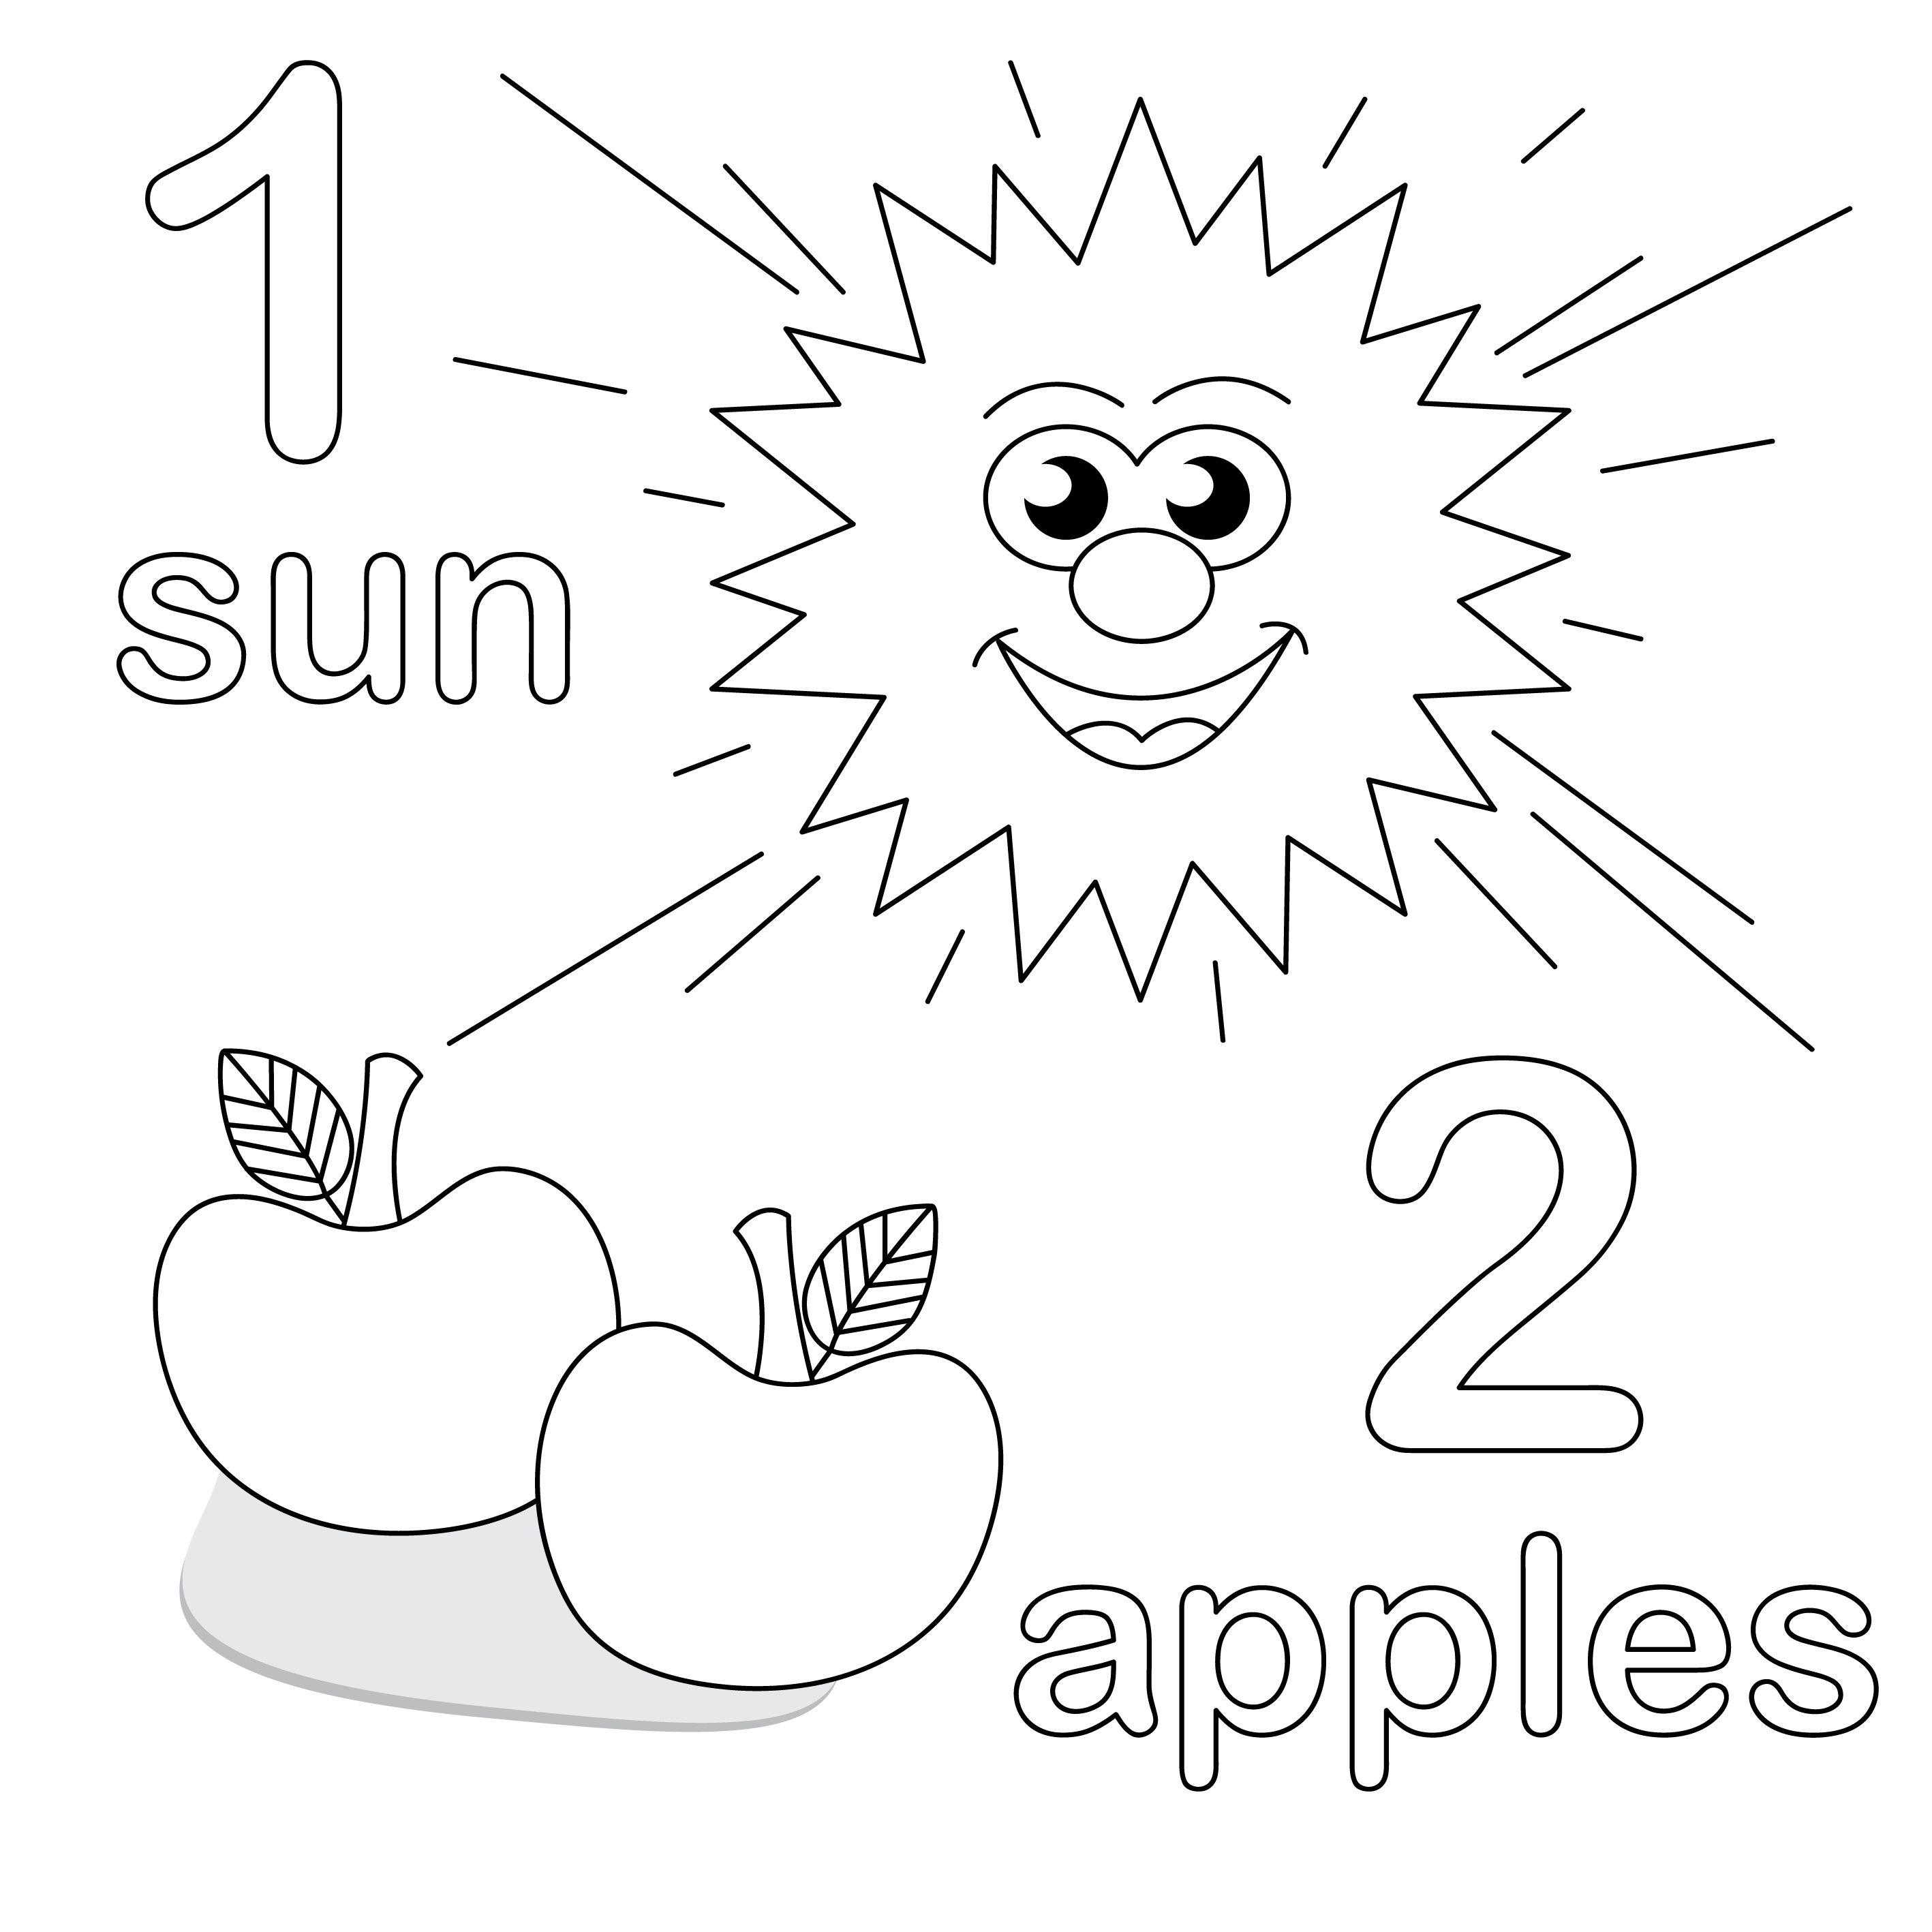 number 3 coloring pages. Number 3 Coloring Pages For Toddlers  Designs Canvas coloring sheets preschool Preschool pages